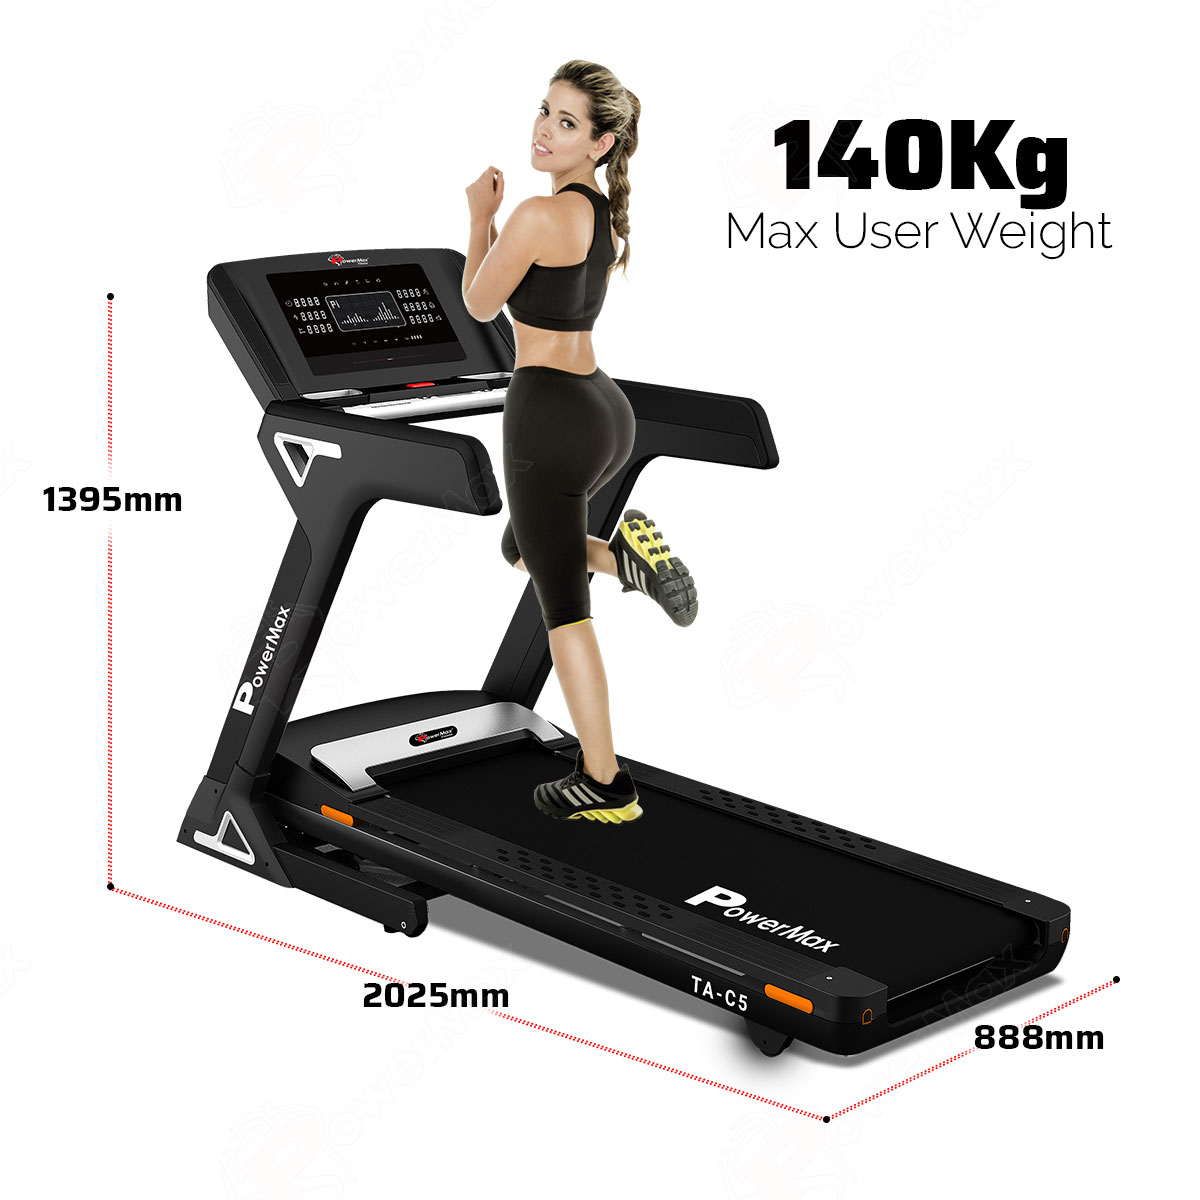 TA-C5 Commercial Motorized AC Treadmill